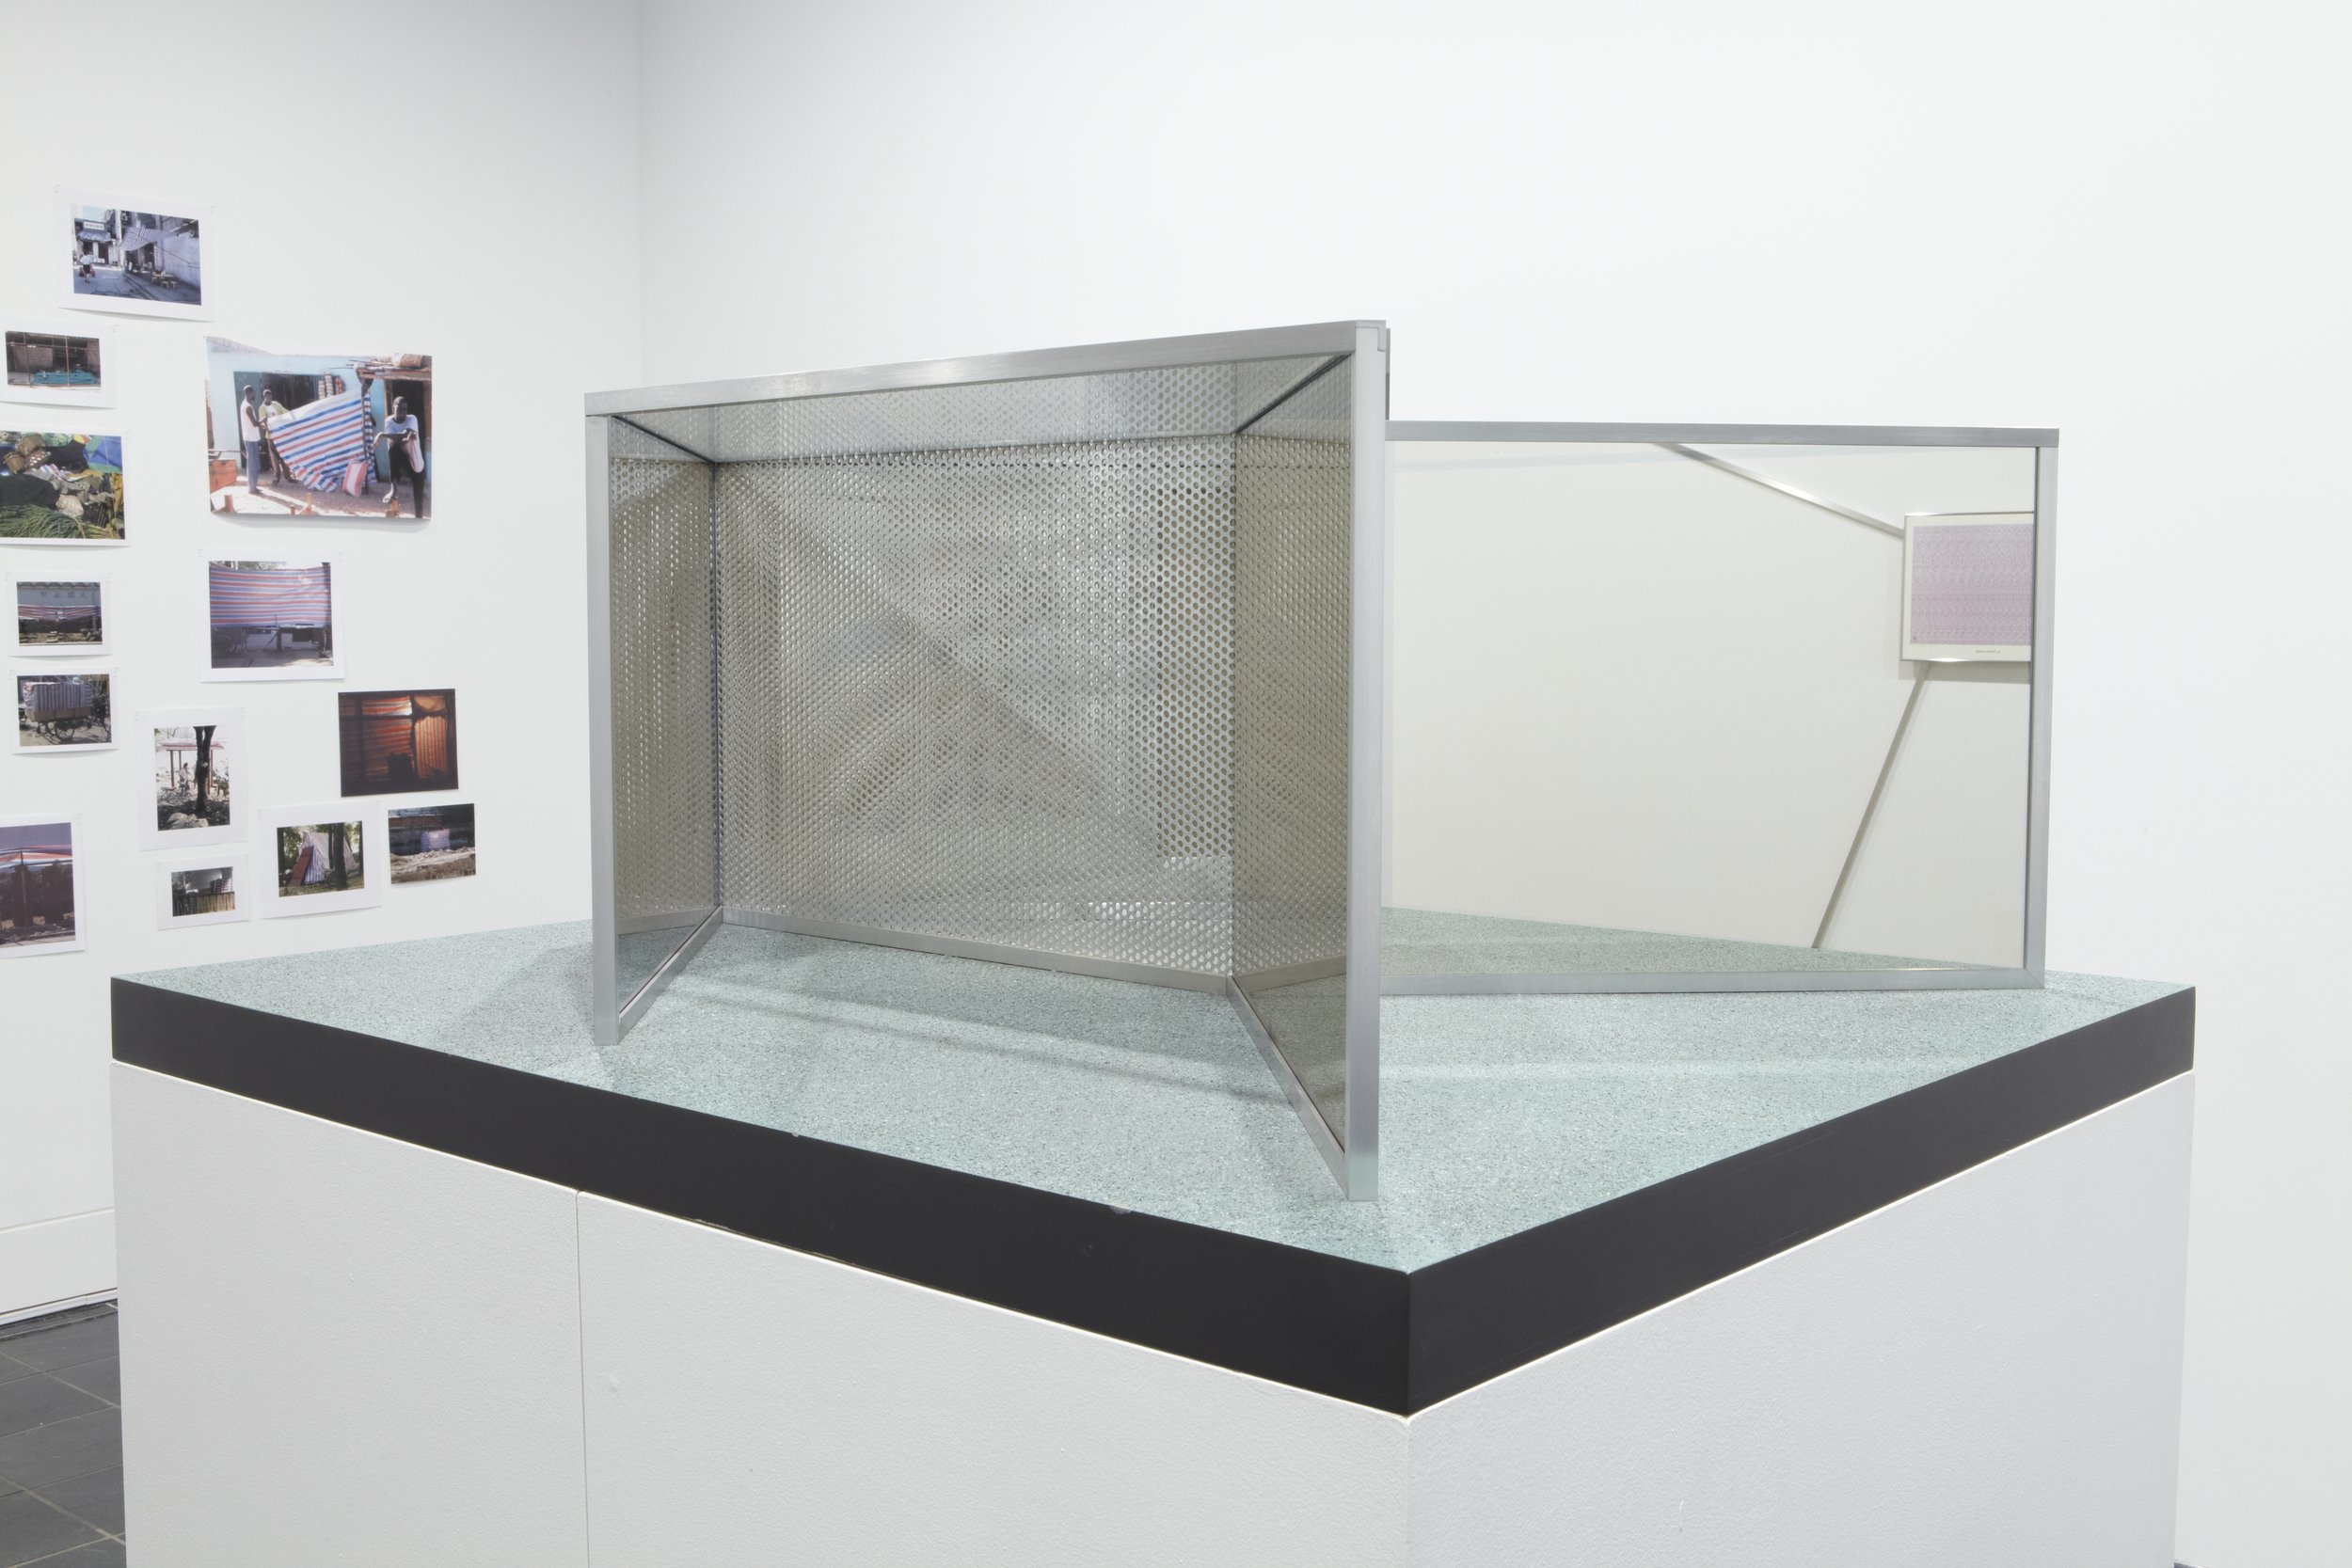 Dan Graham,  Serpentine II , 1995. Two-way mirror, transparent glass, punched aluminum, aluminum, 14 x 36 x 30 inches. Courtesy of Marian Goodman Gallery, New York